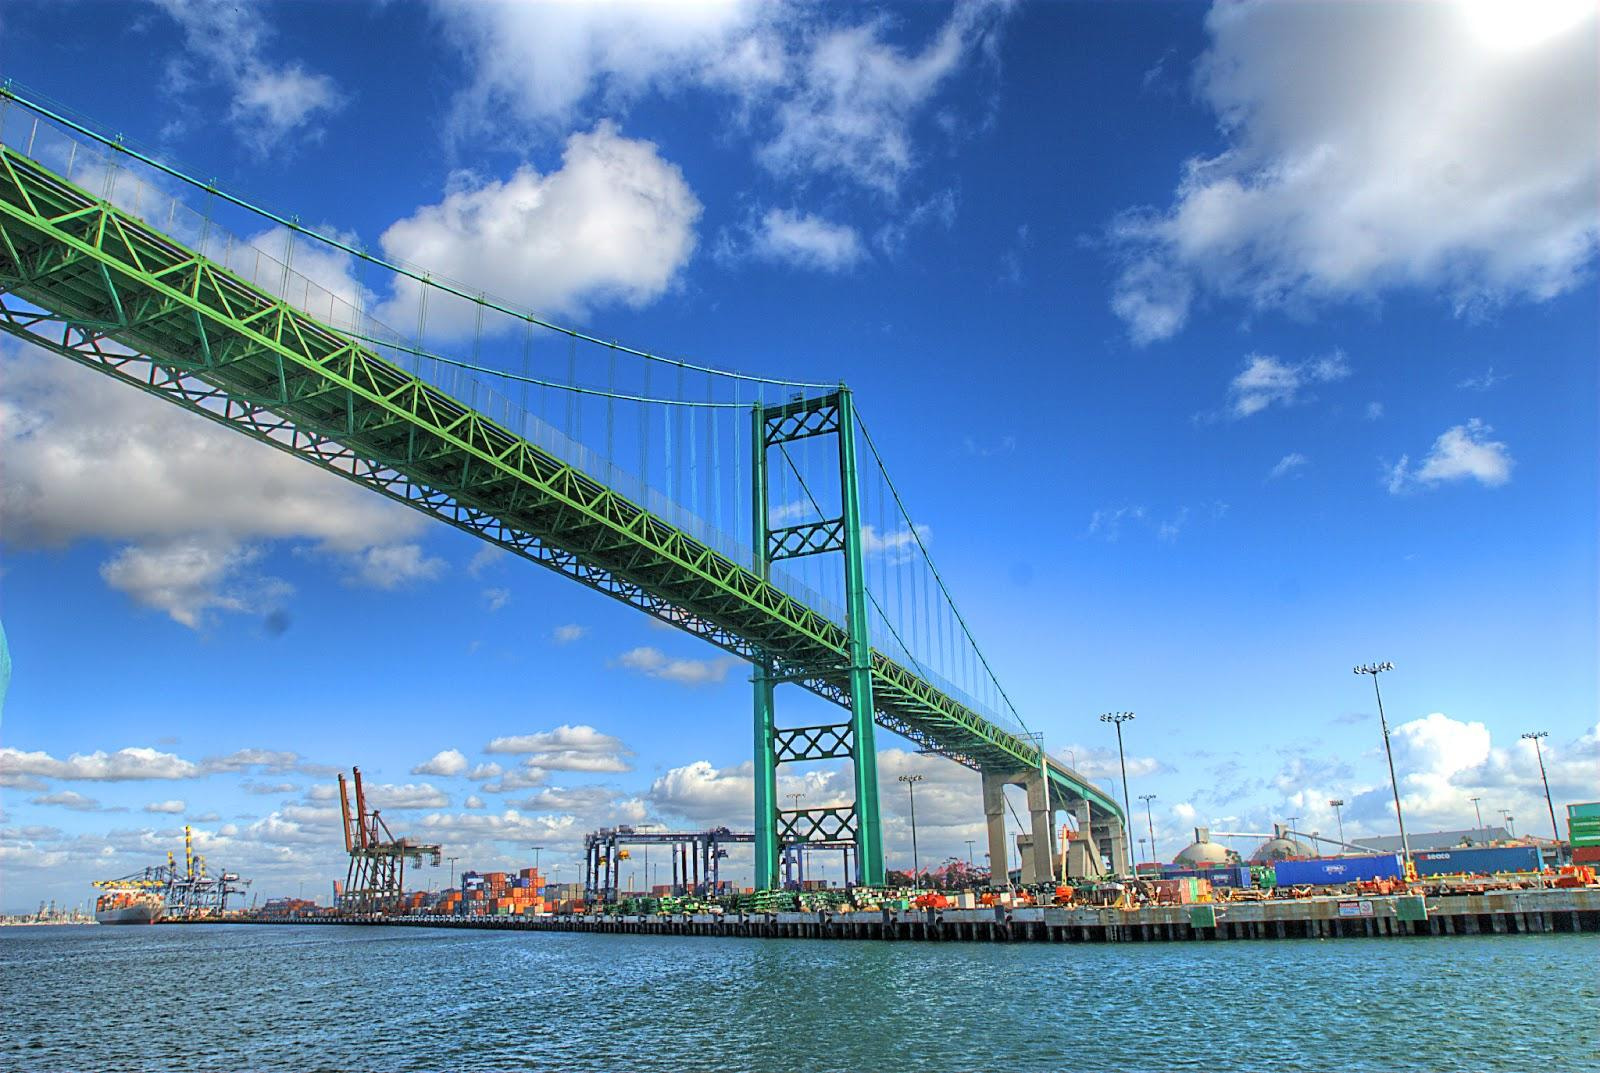 Photograph JJK_0802_vincent_thomas_bridge.jpg by Jürgen Keil on 500px